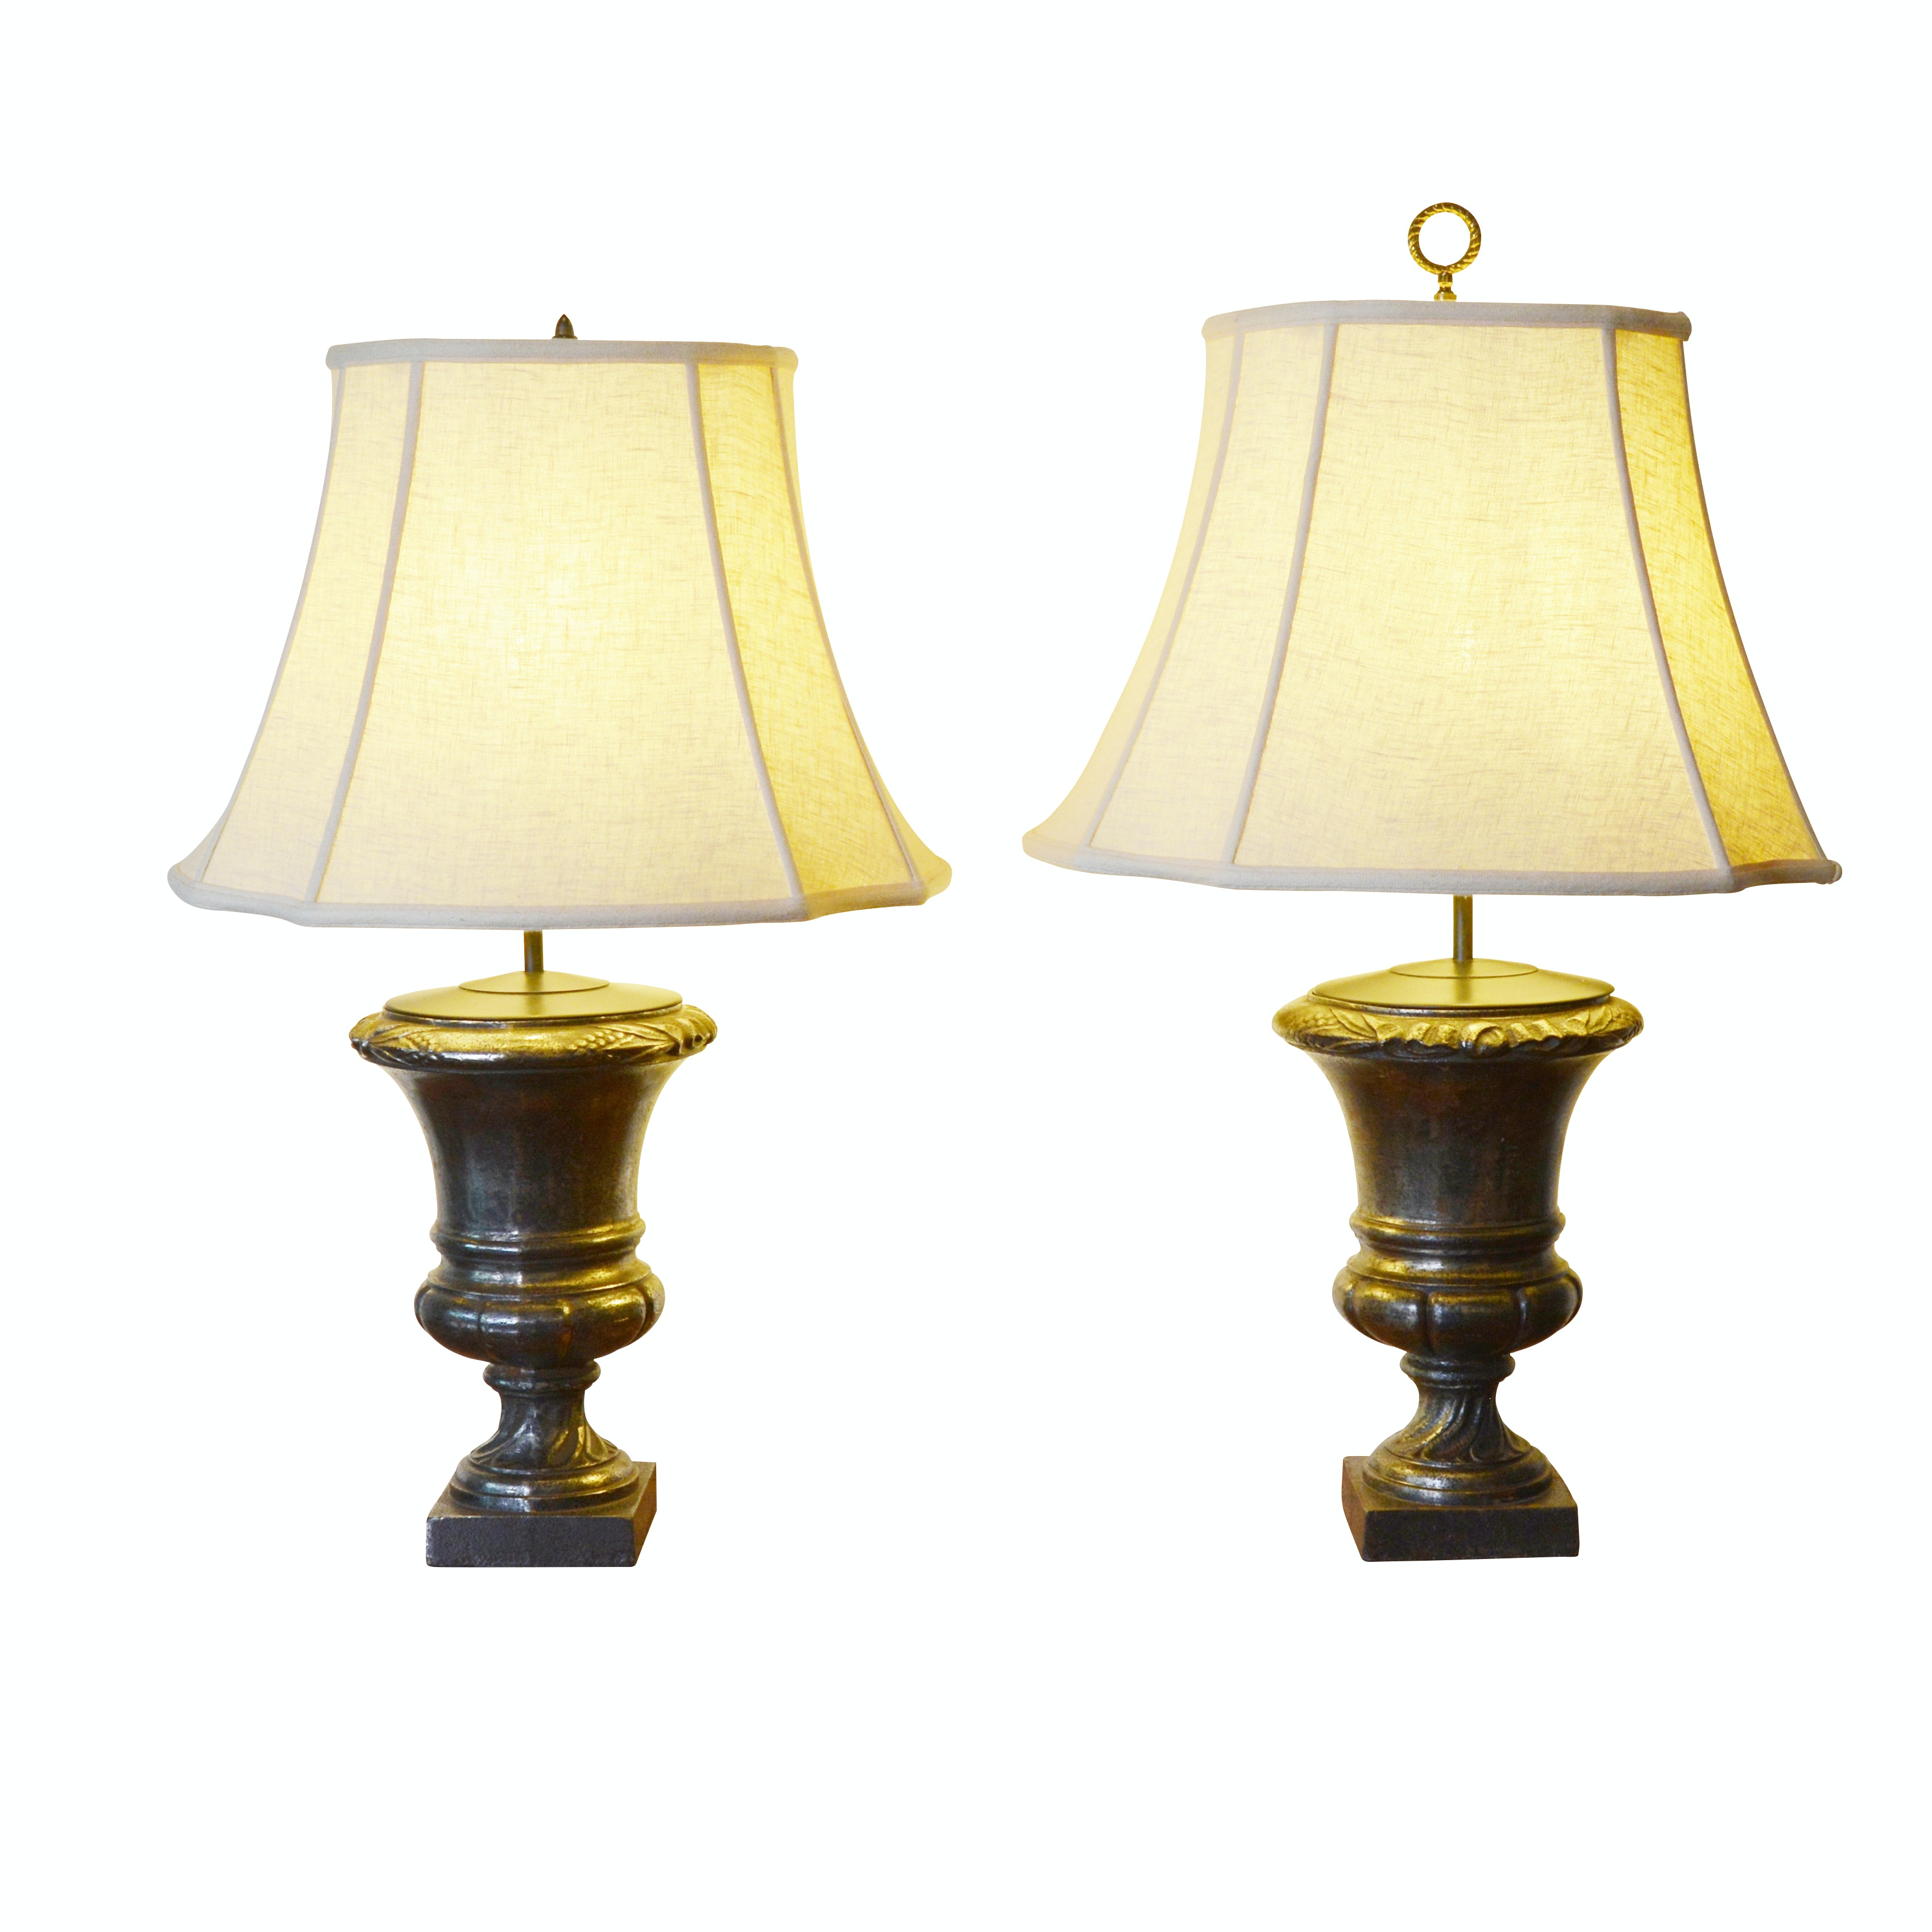 Metal Urn Form Table Lamps